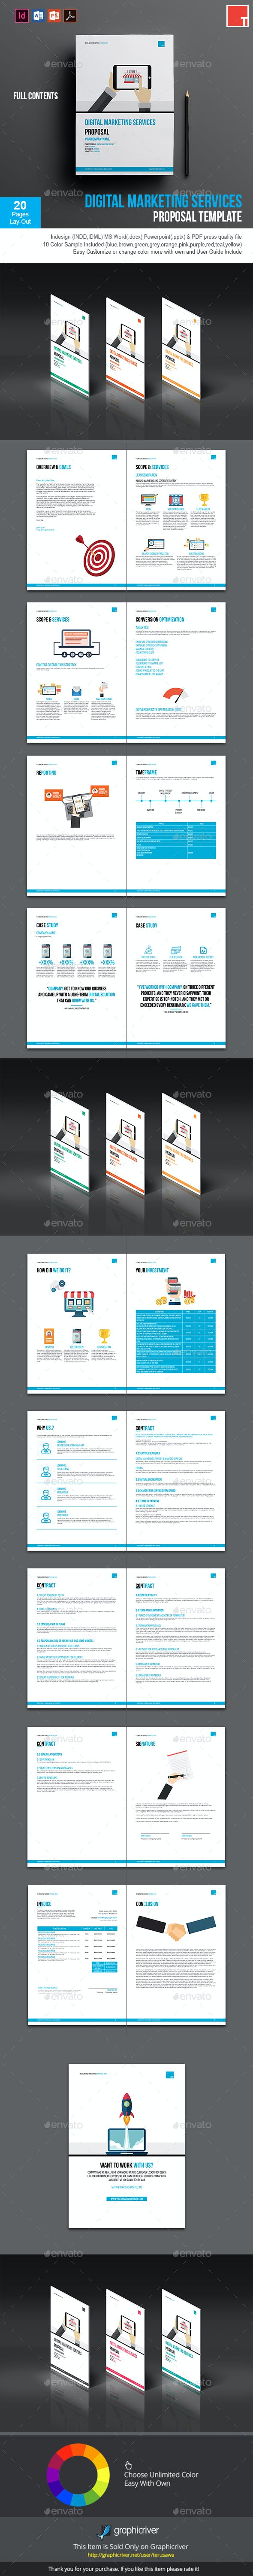 Digital Marketing Services Proposal Template By Terusawa Graphicriver